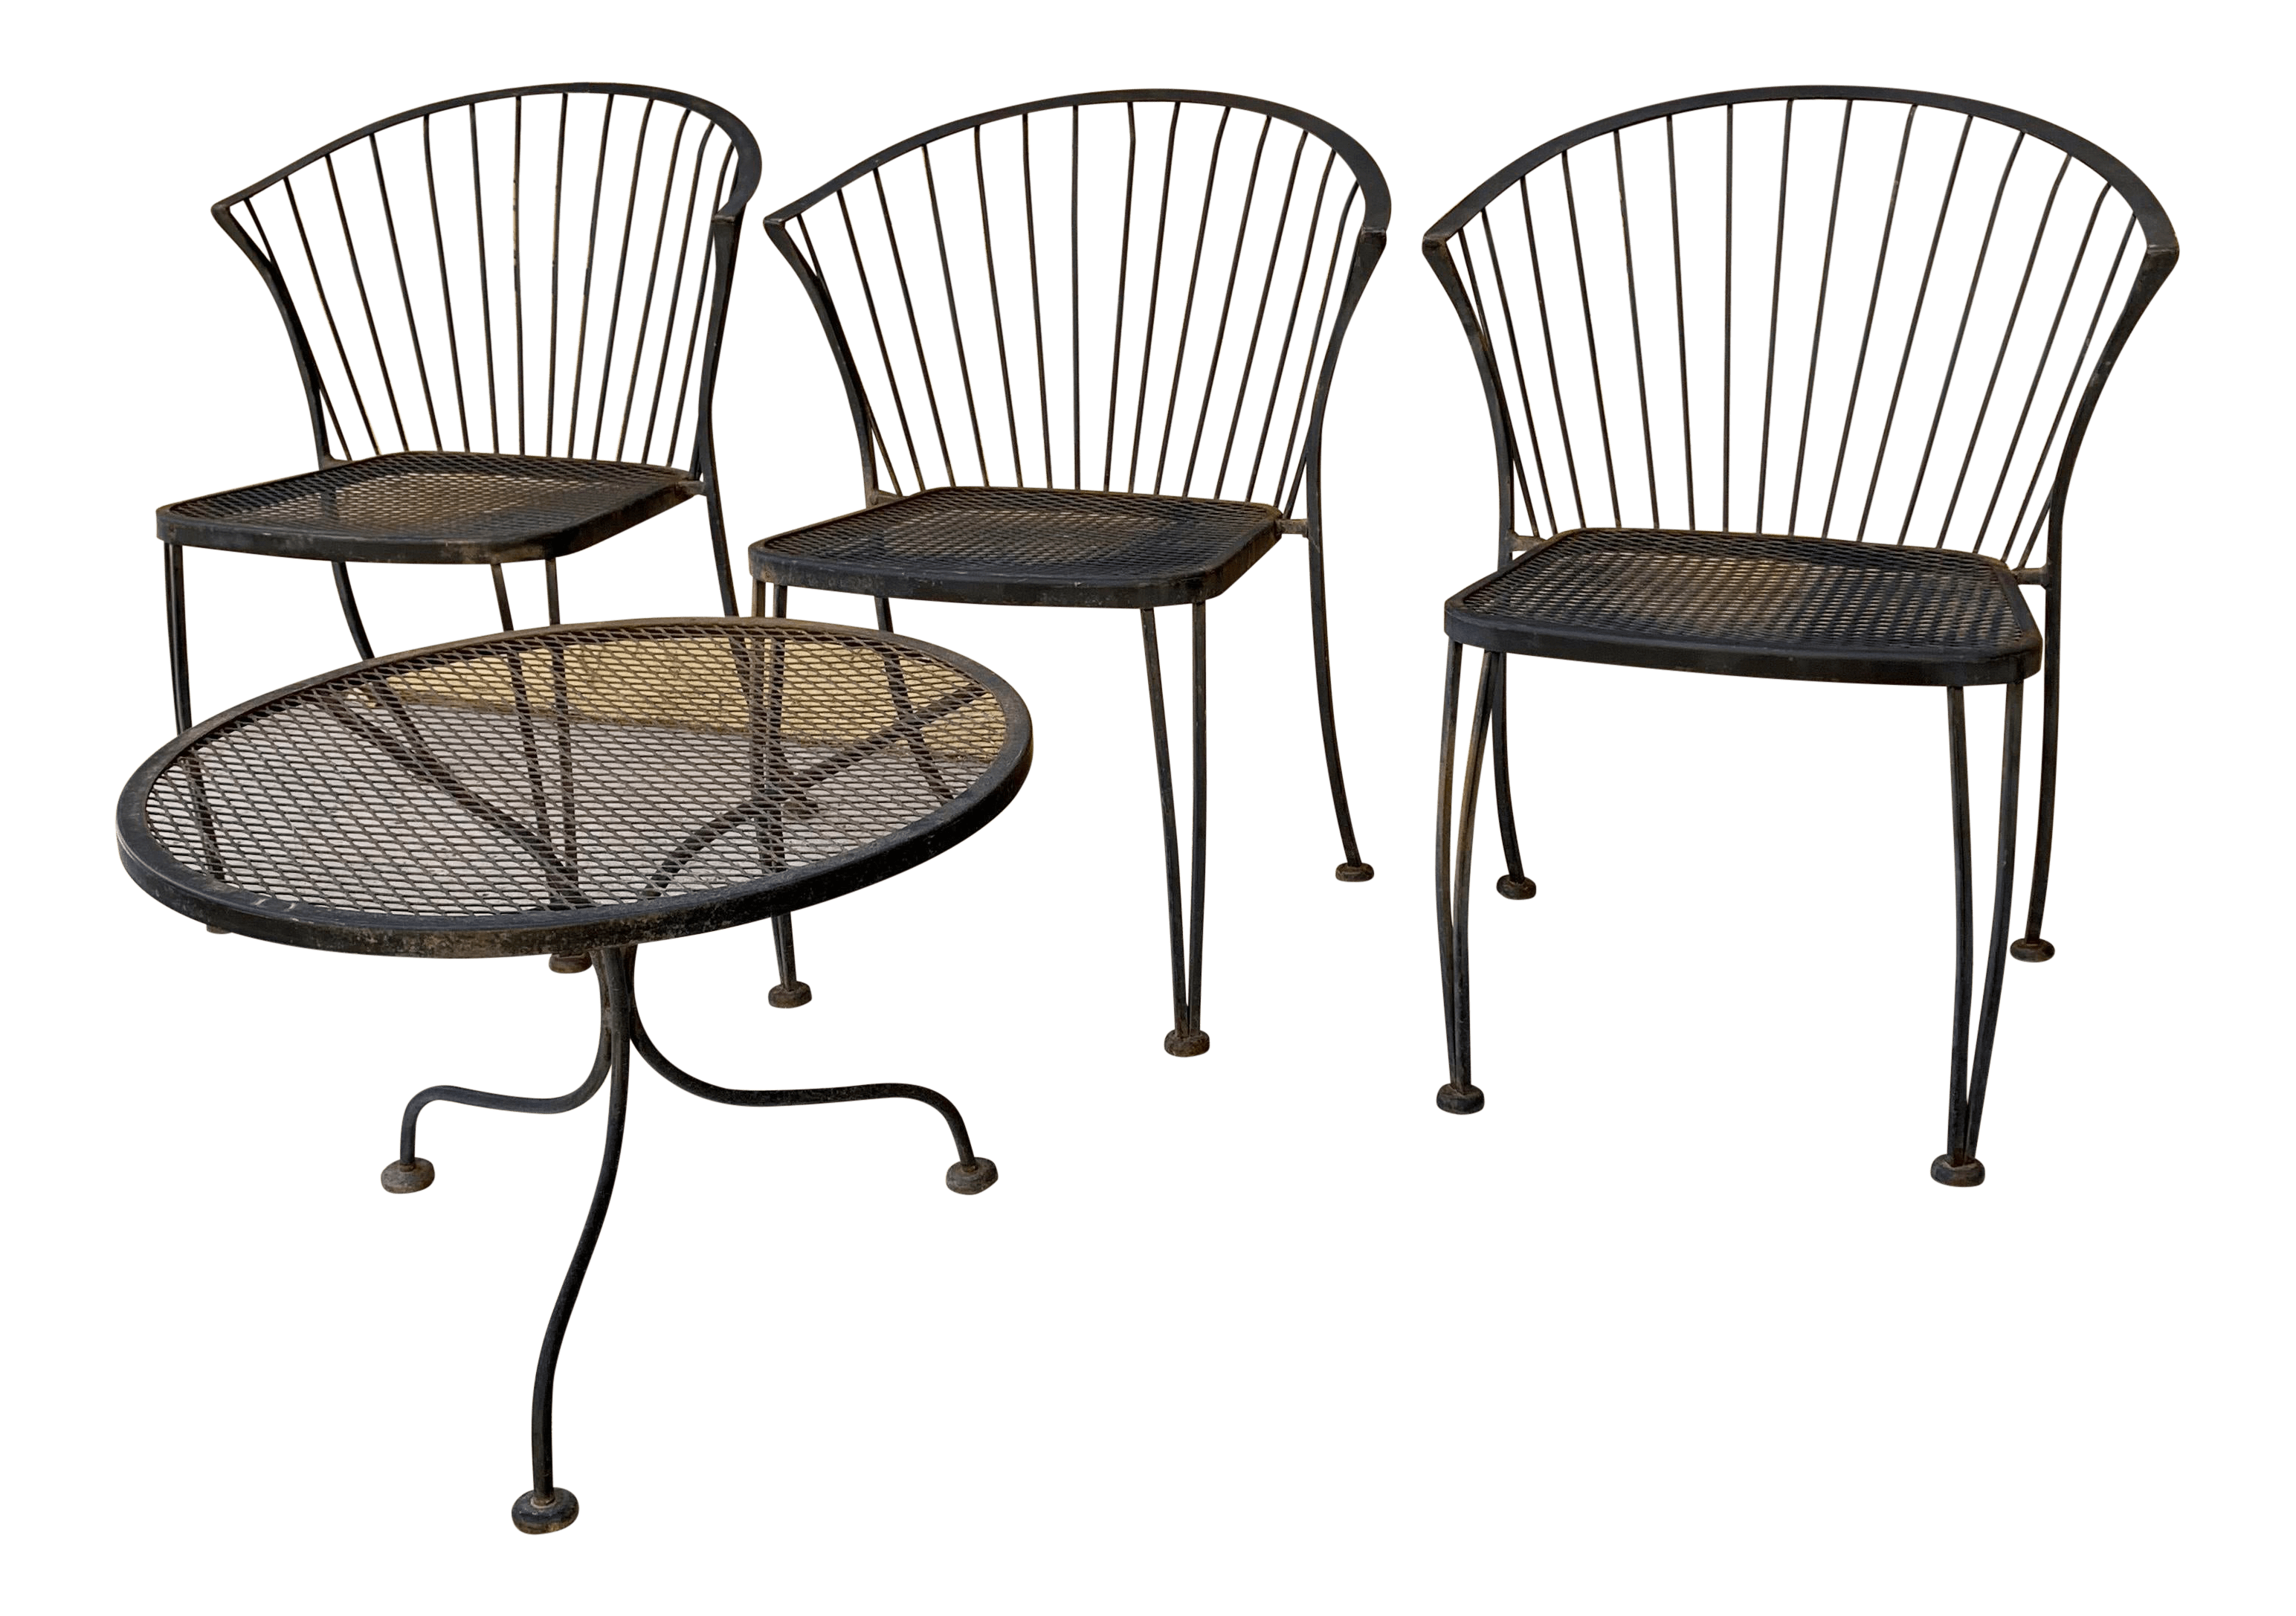 carolina forge wrought iron barrel back mid century patio dining chairs and table set 3 chairs and 1 table